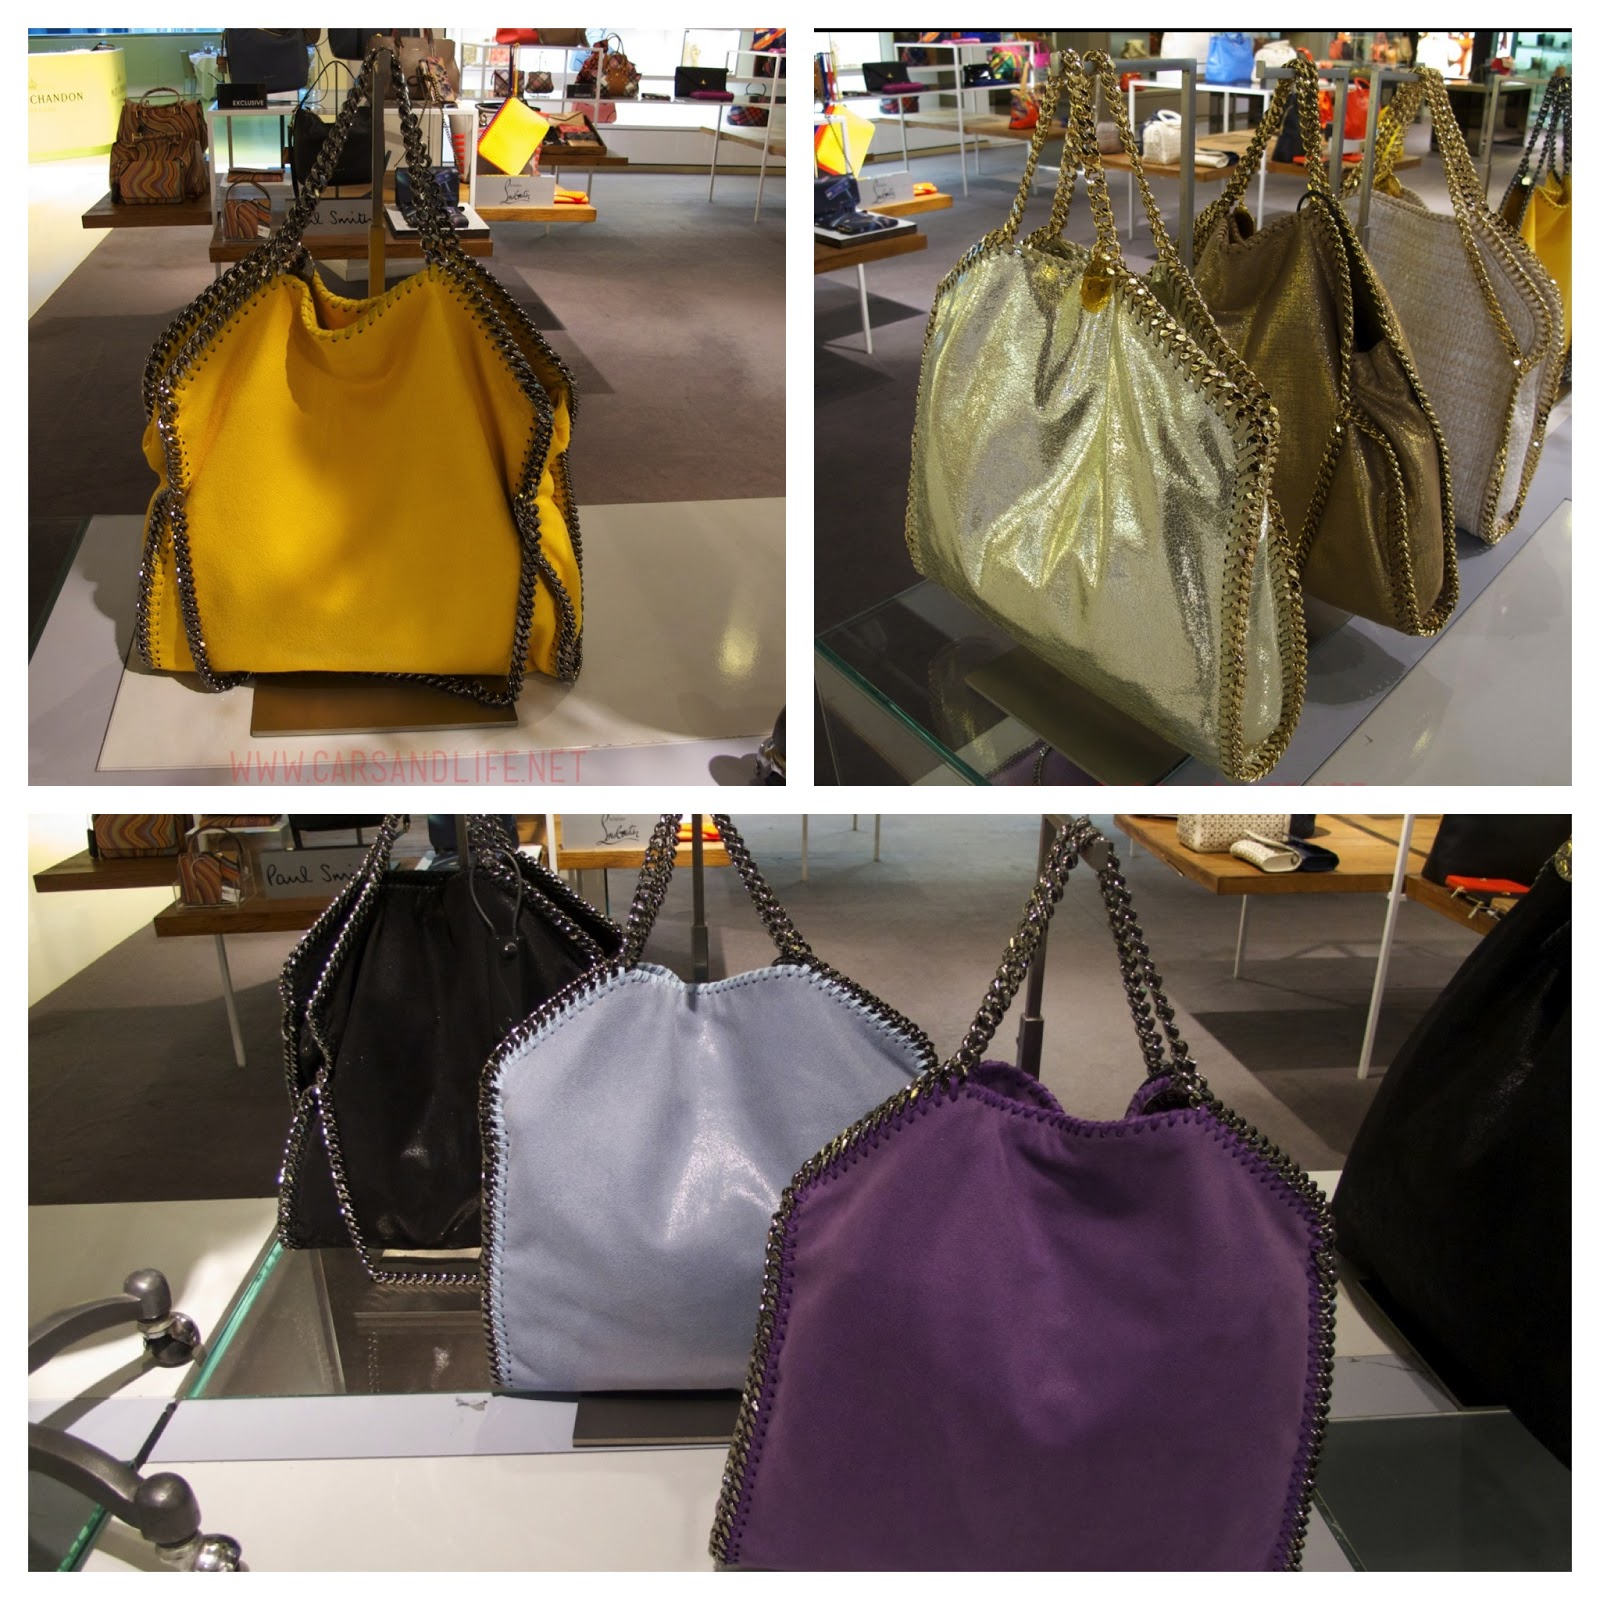 Stella Mccartney Fallabella Shoulder Bags From Selfridges Last Week During My Visit To Birmingham I Had Chance See The S